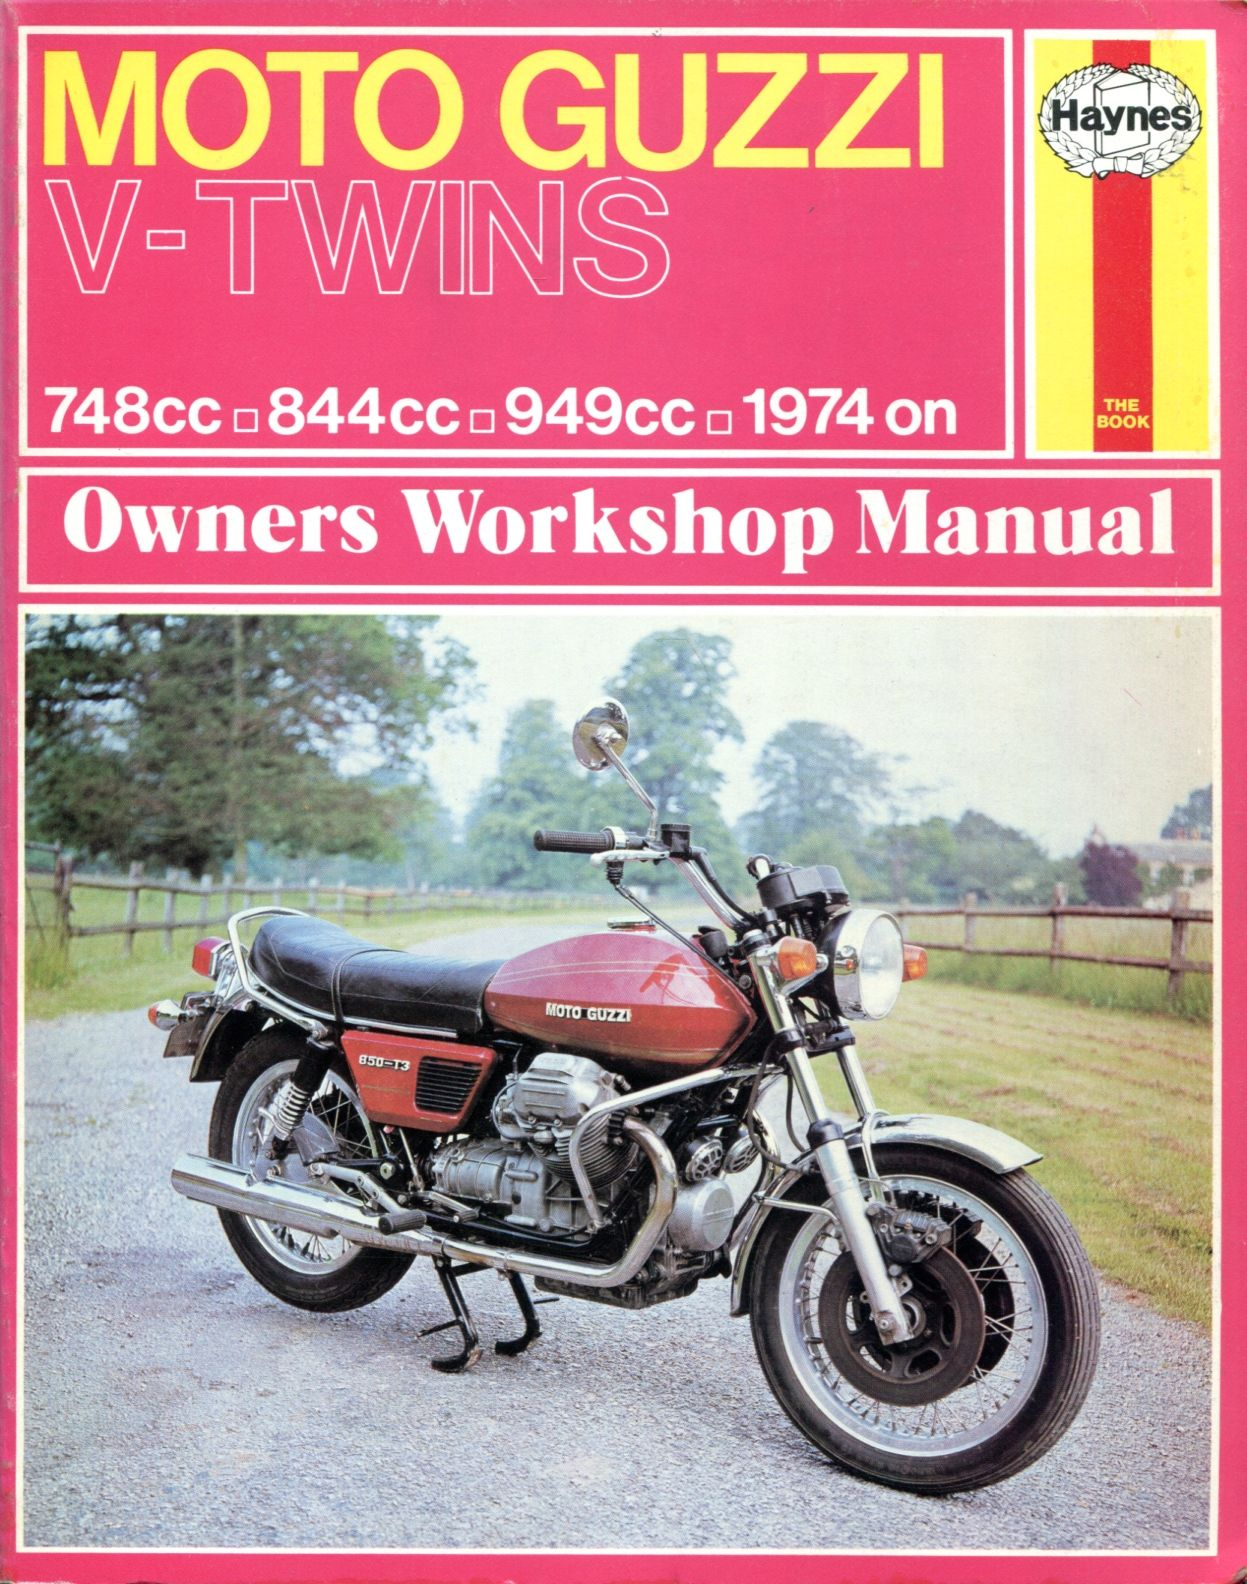 9780856963391 - Moto-Guzzi 750, 850 and 1000 V-Twins Owners Workshop Manual,  No. M339 '74-'78 (Haynes Manuals) by John Harold Haynes